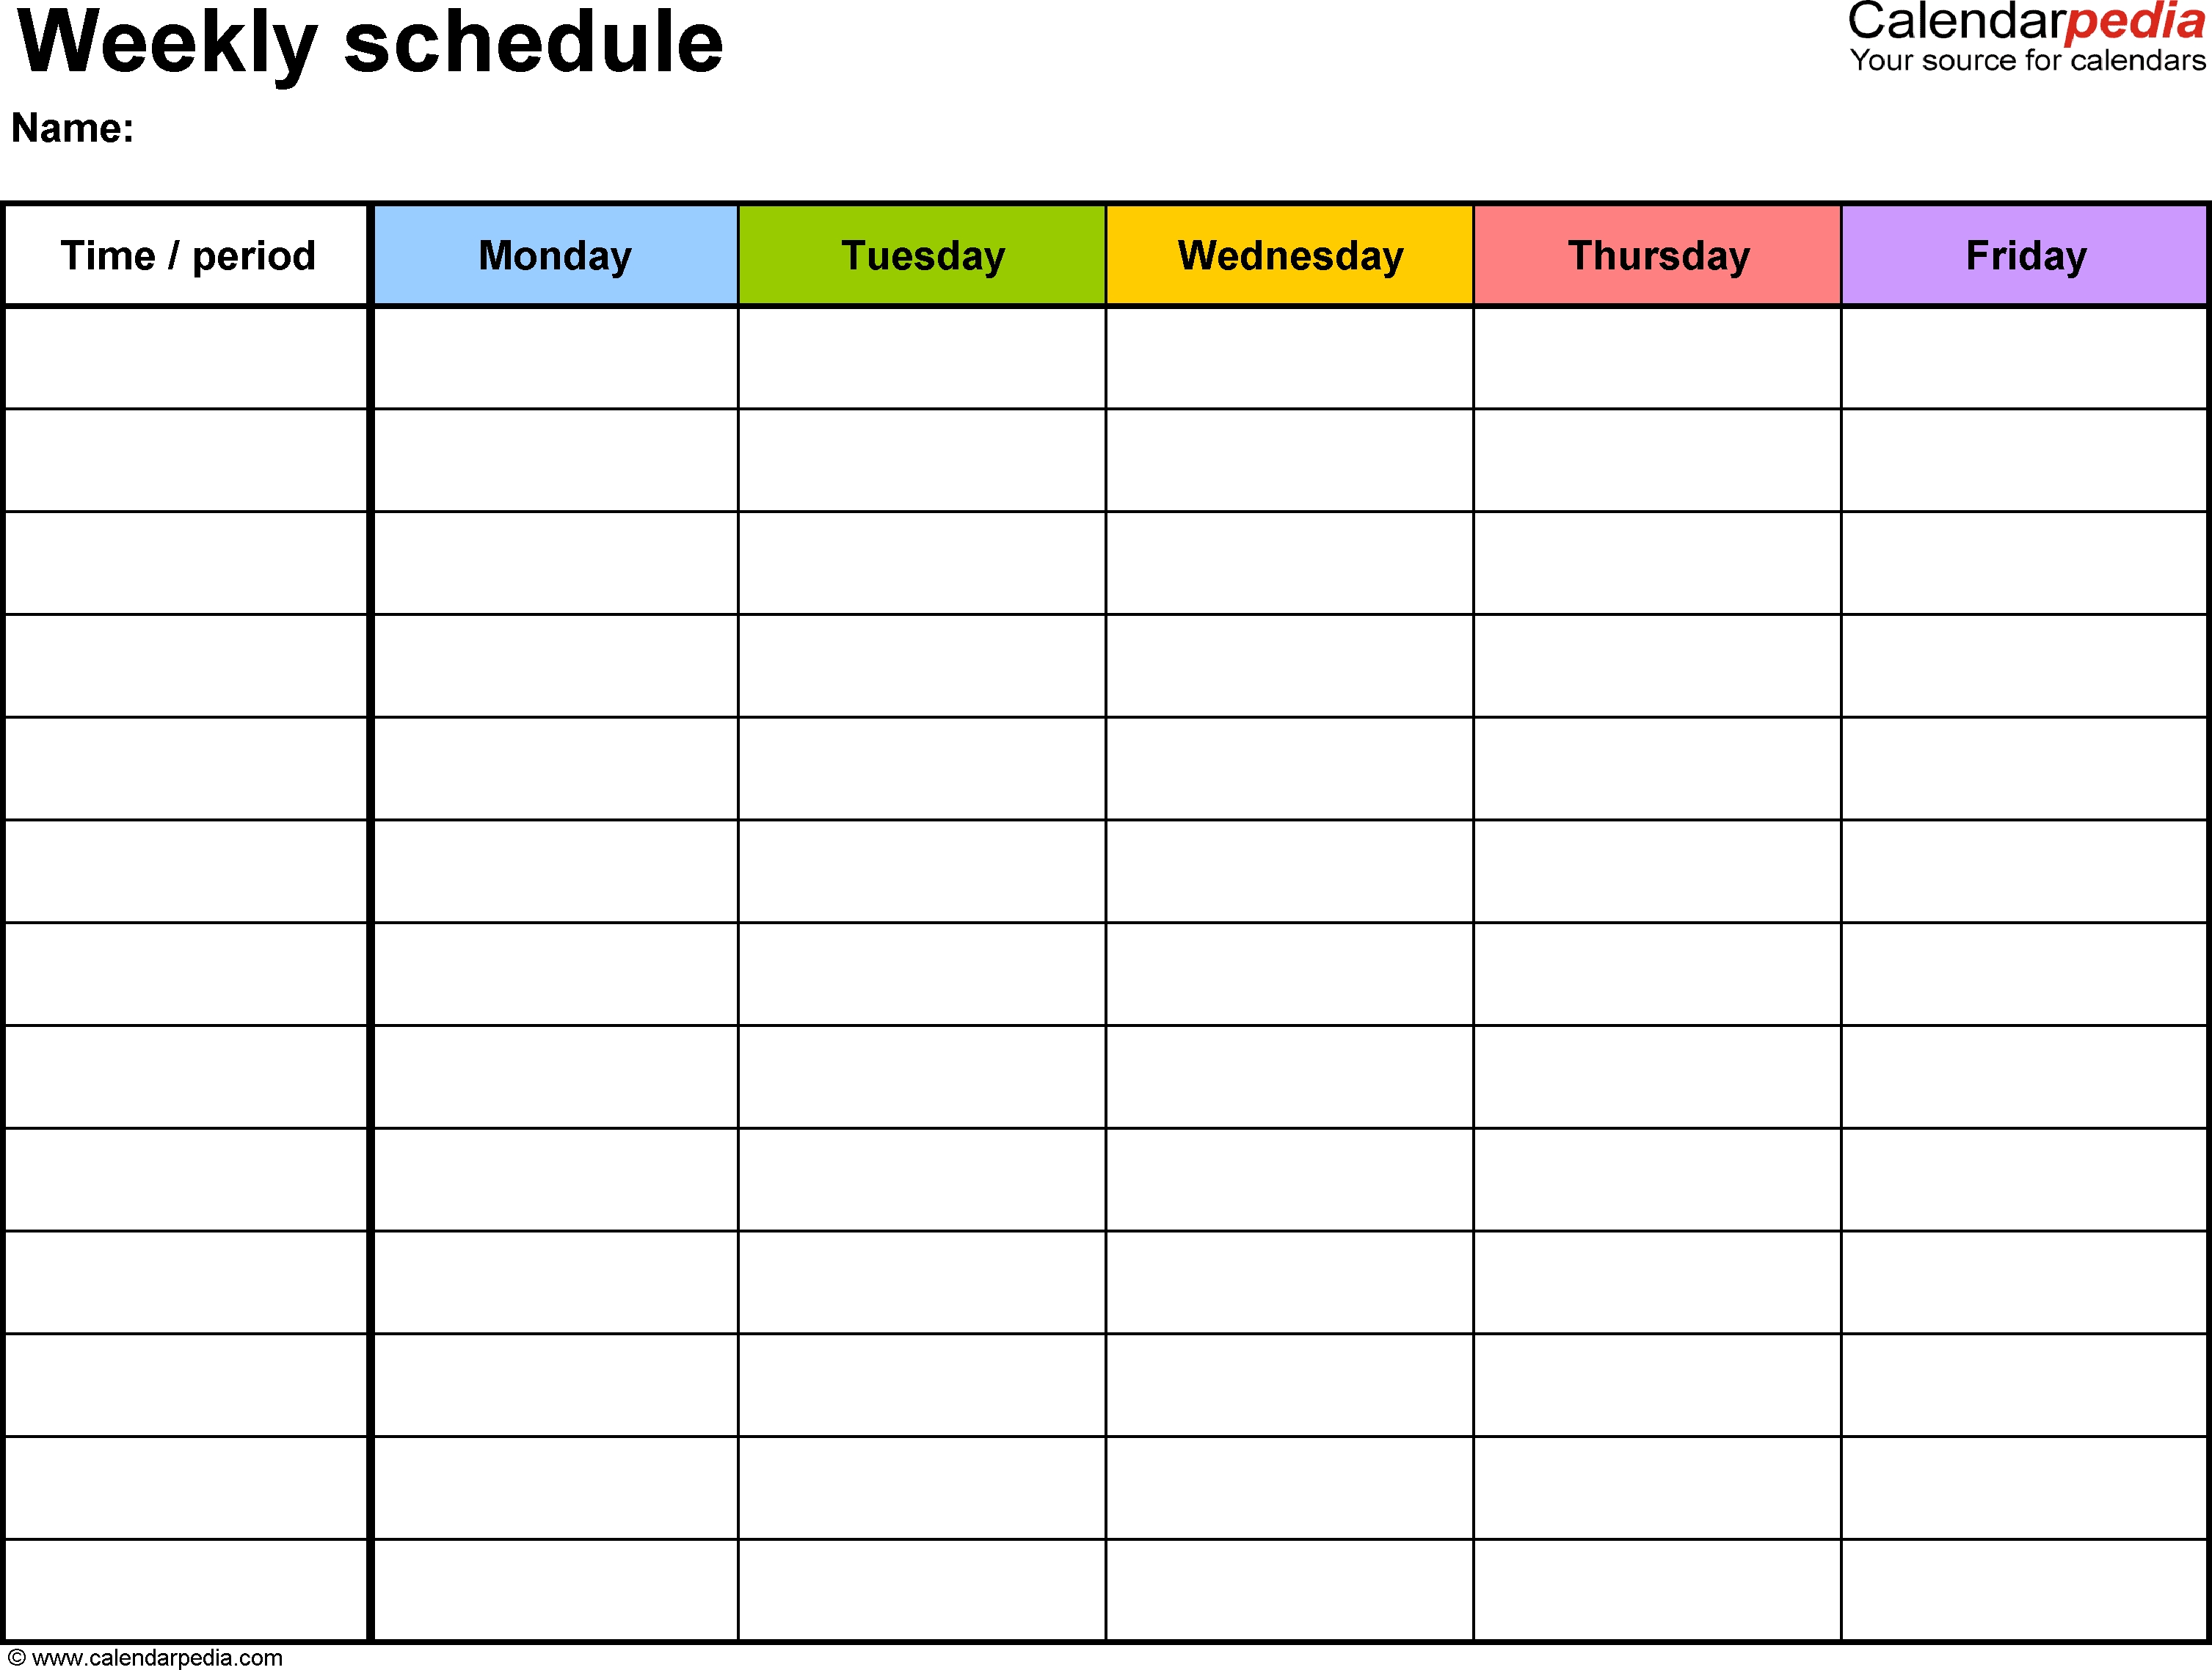 Free Weekly Schedule Templates For Word - 18 Templates pertaining to Blank 6 Week Calendar Template